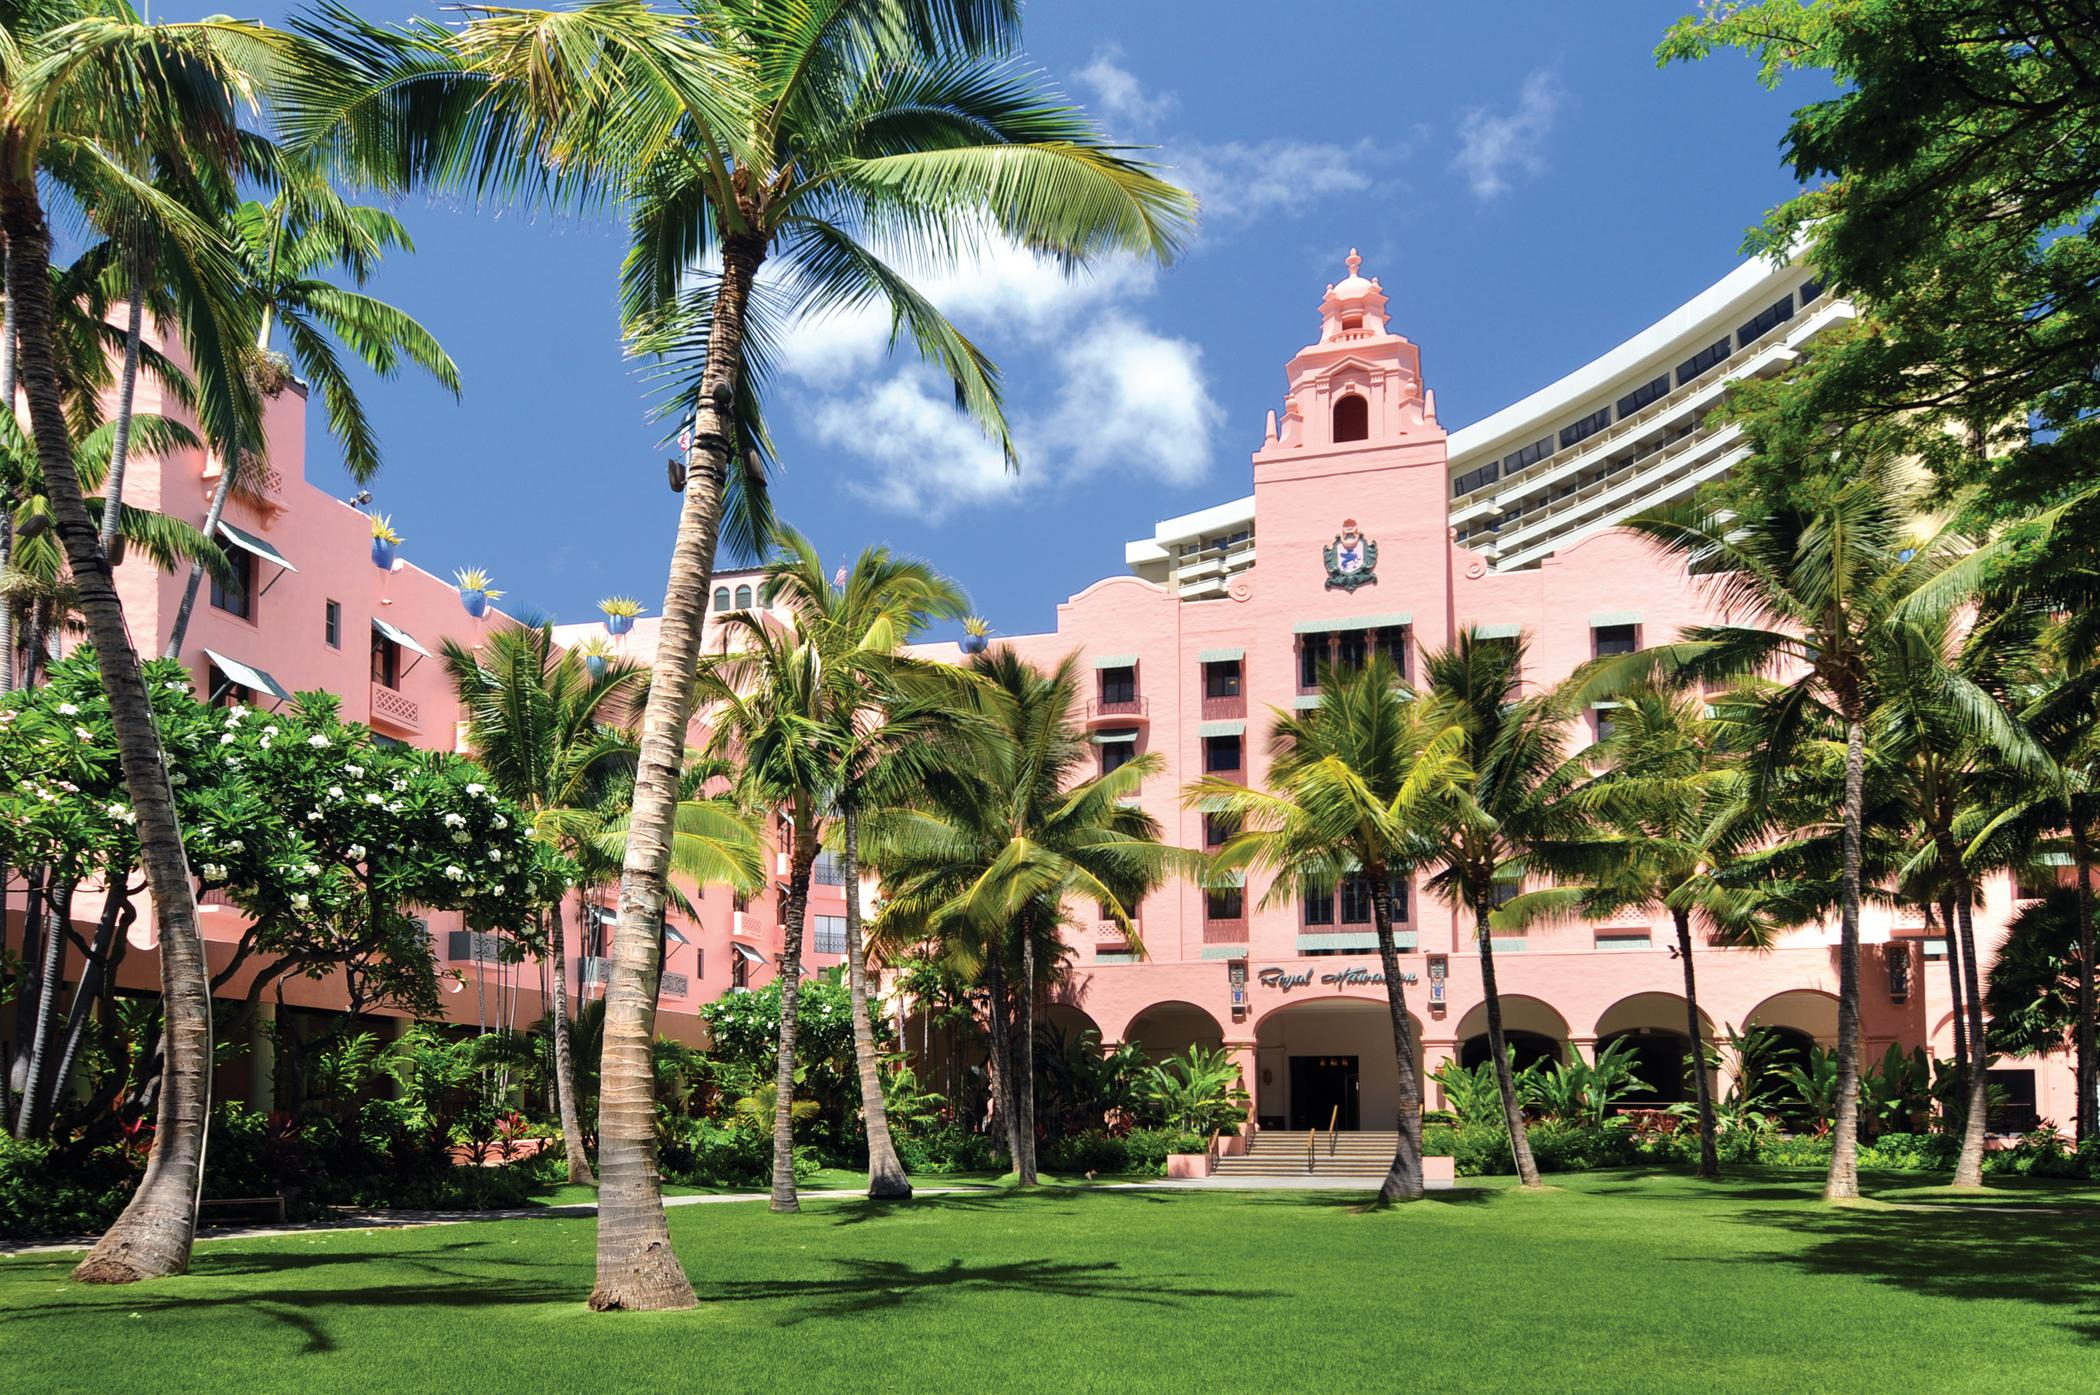 USA-Hawaii-Oahu-Royal Hawaiian-Exterior .jpg